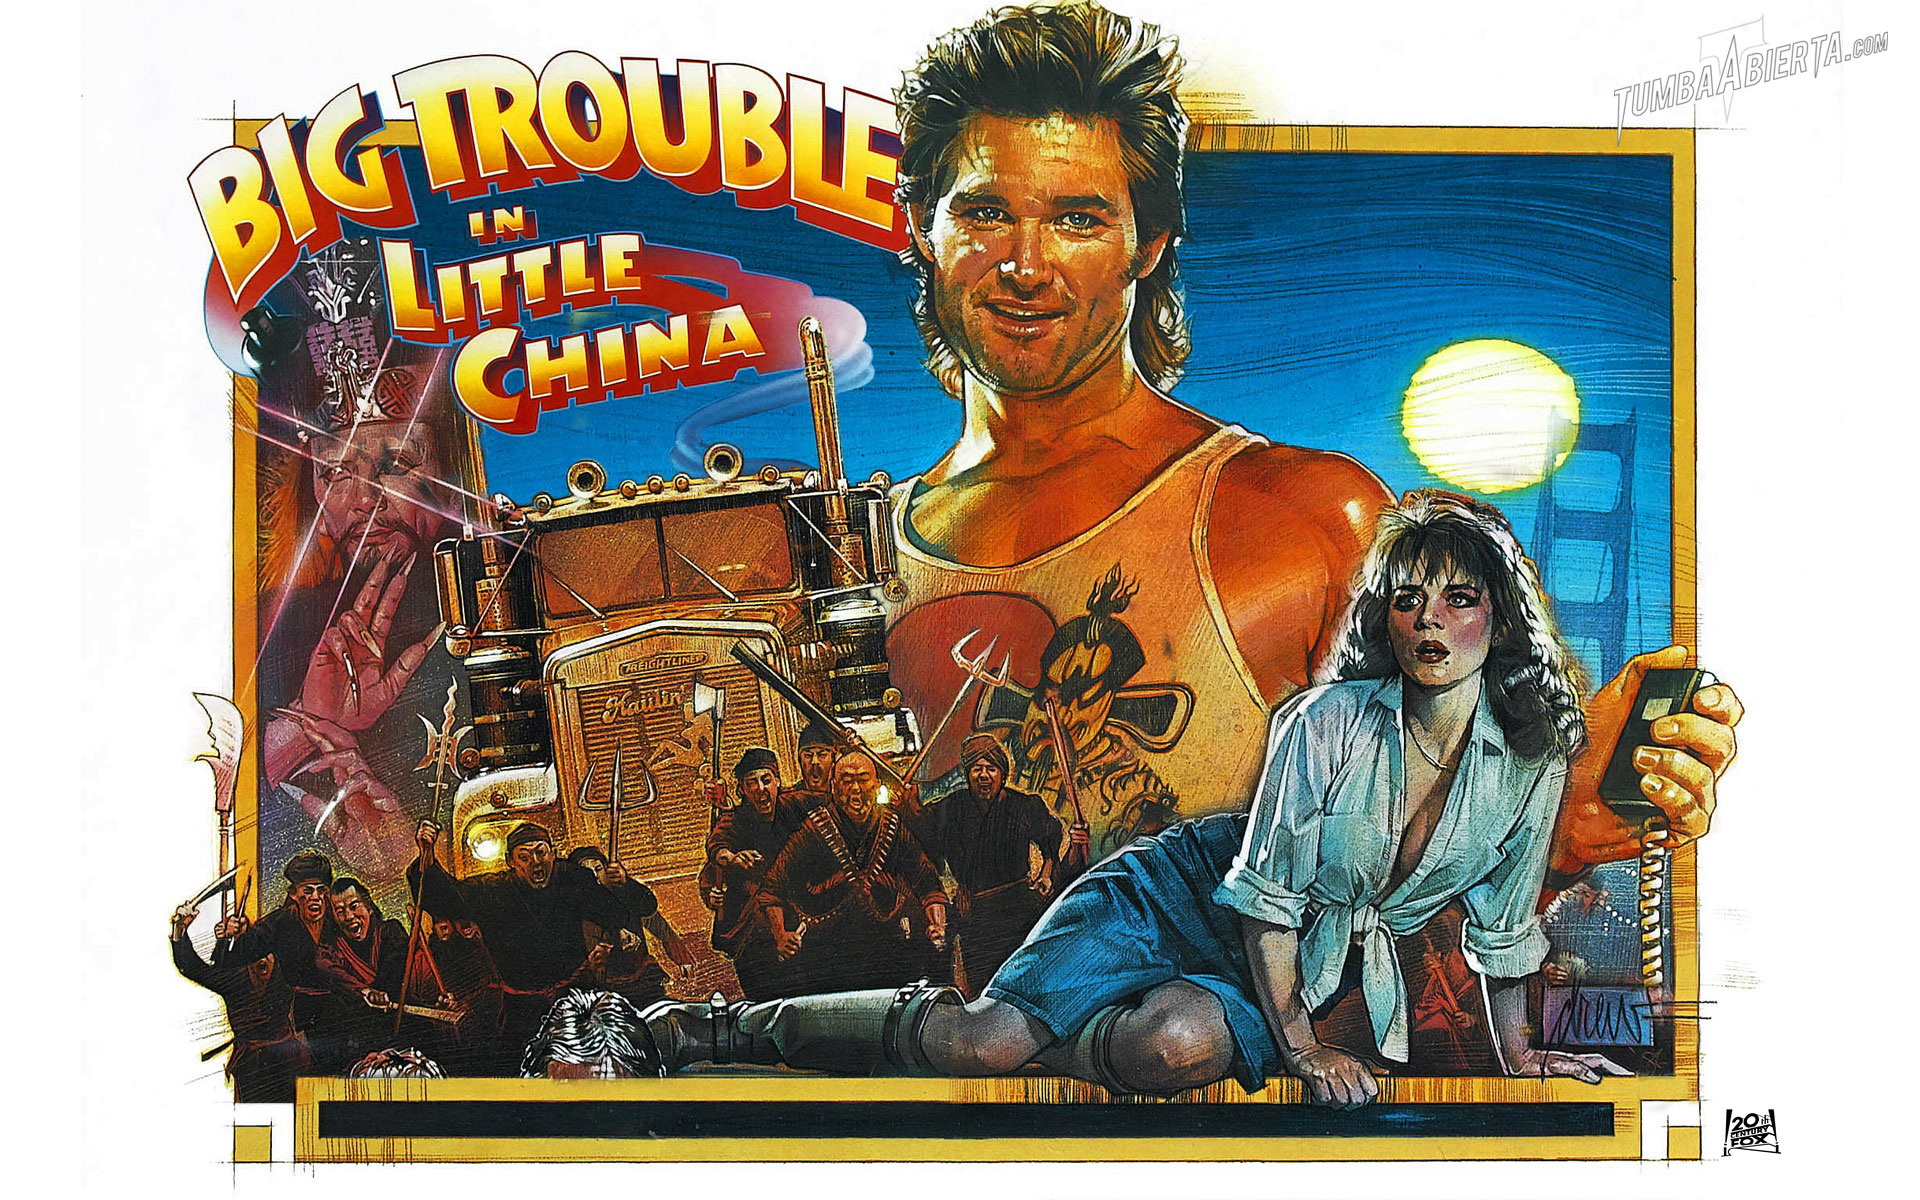 Wallpaper. Golpe en la pequeña China (big trouble in little China) de John Carpenter